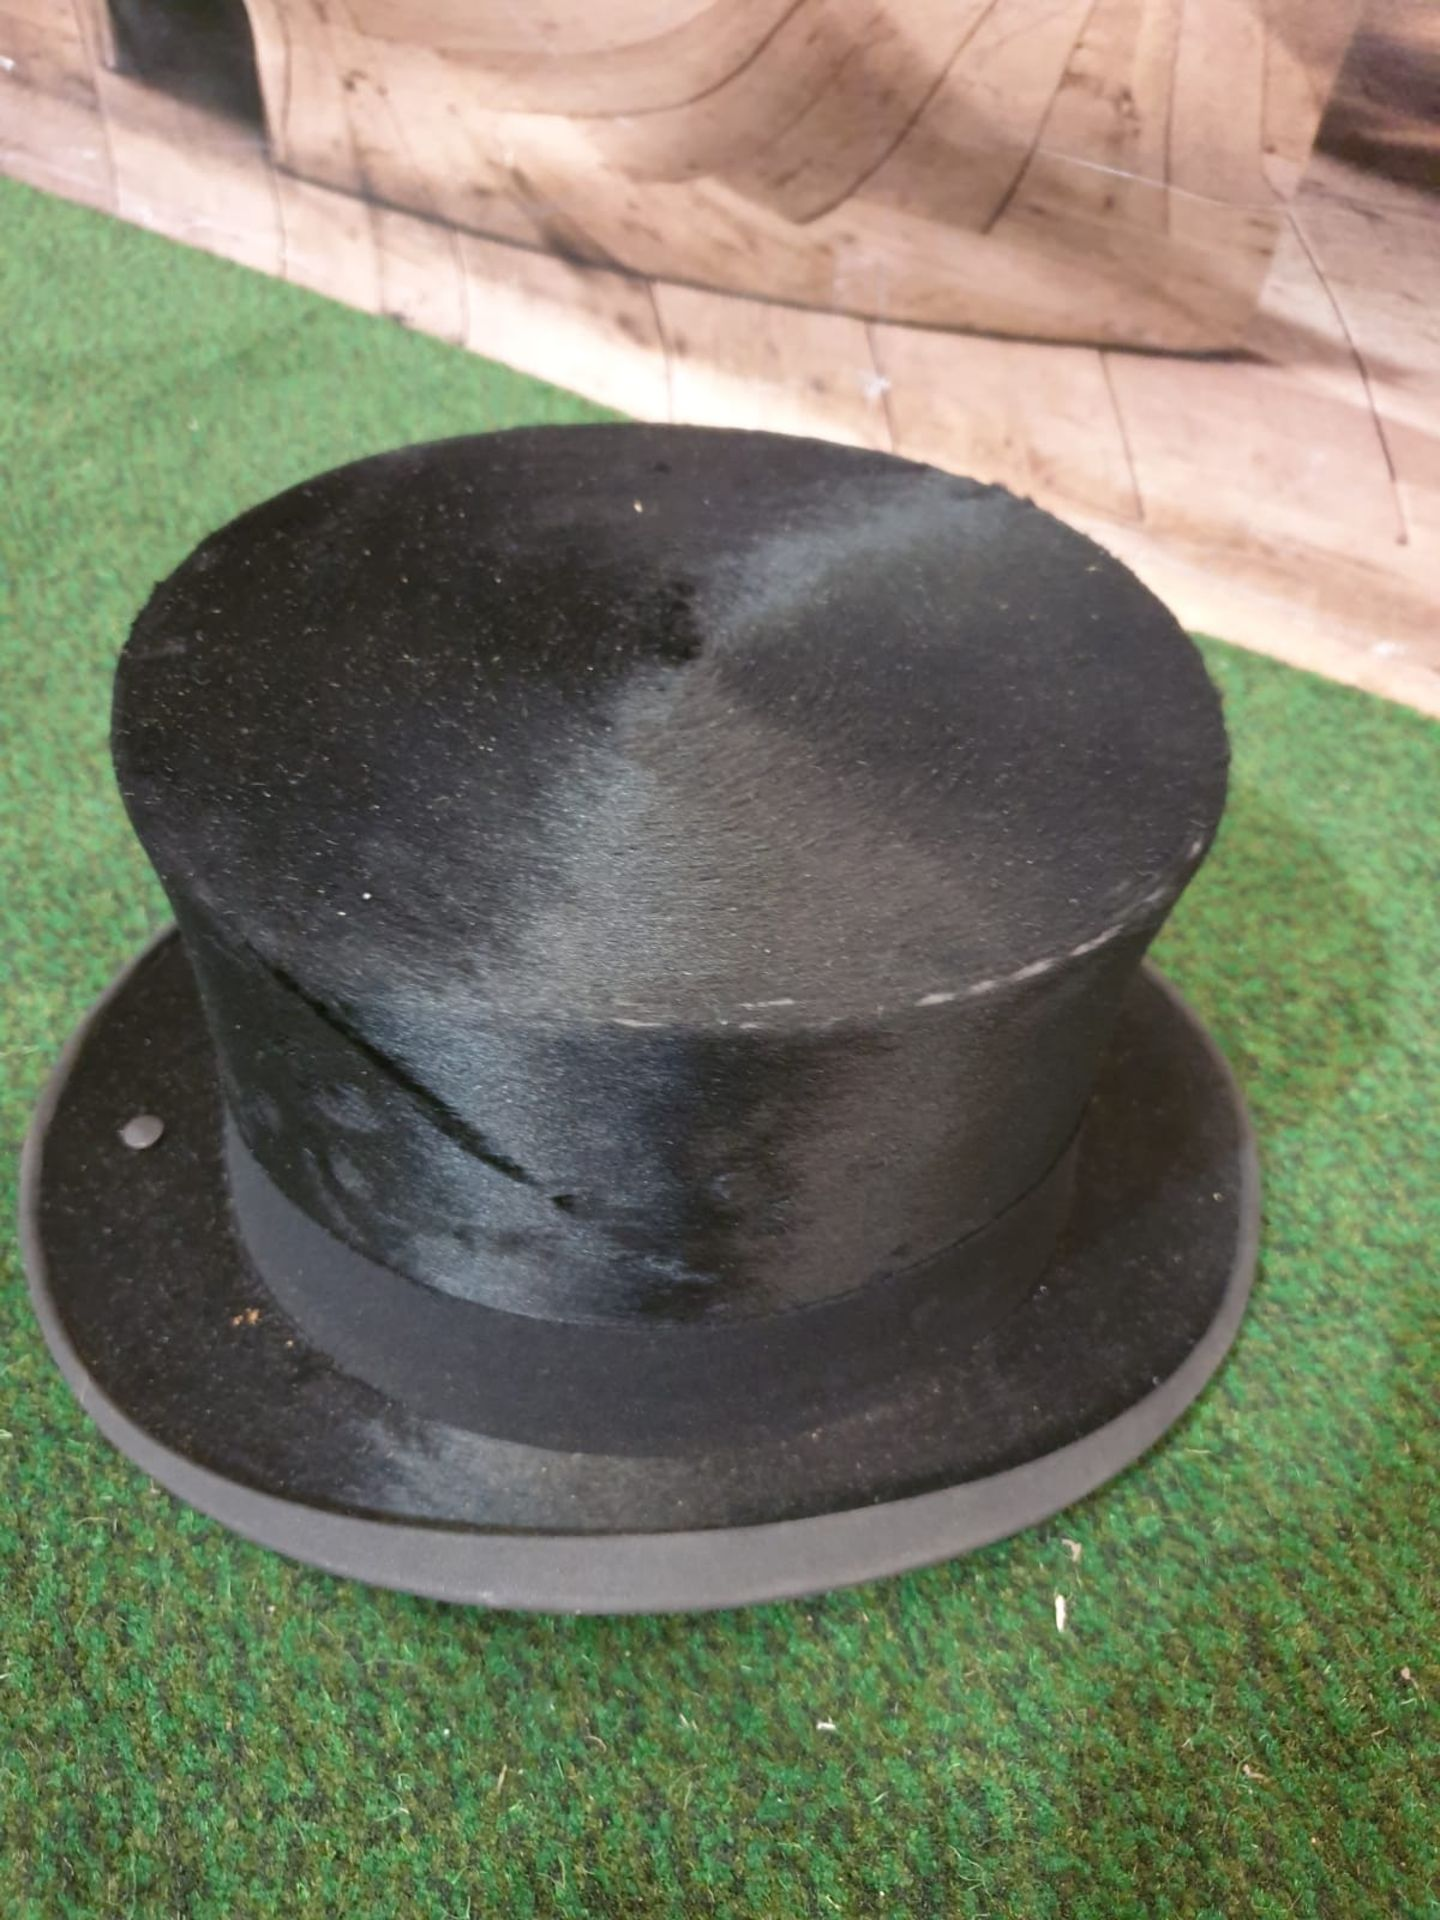 A James Lock + Co. Silk Black Top hat with original card box - Image 2 of 5